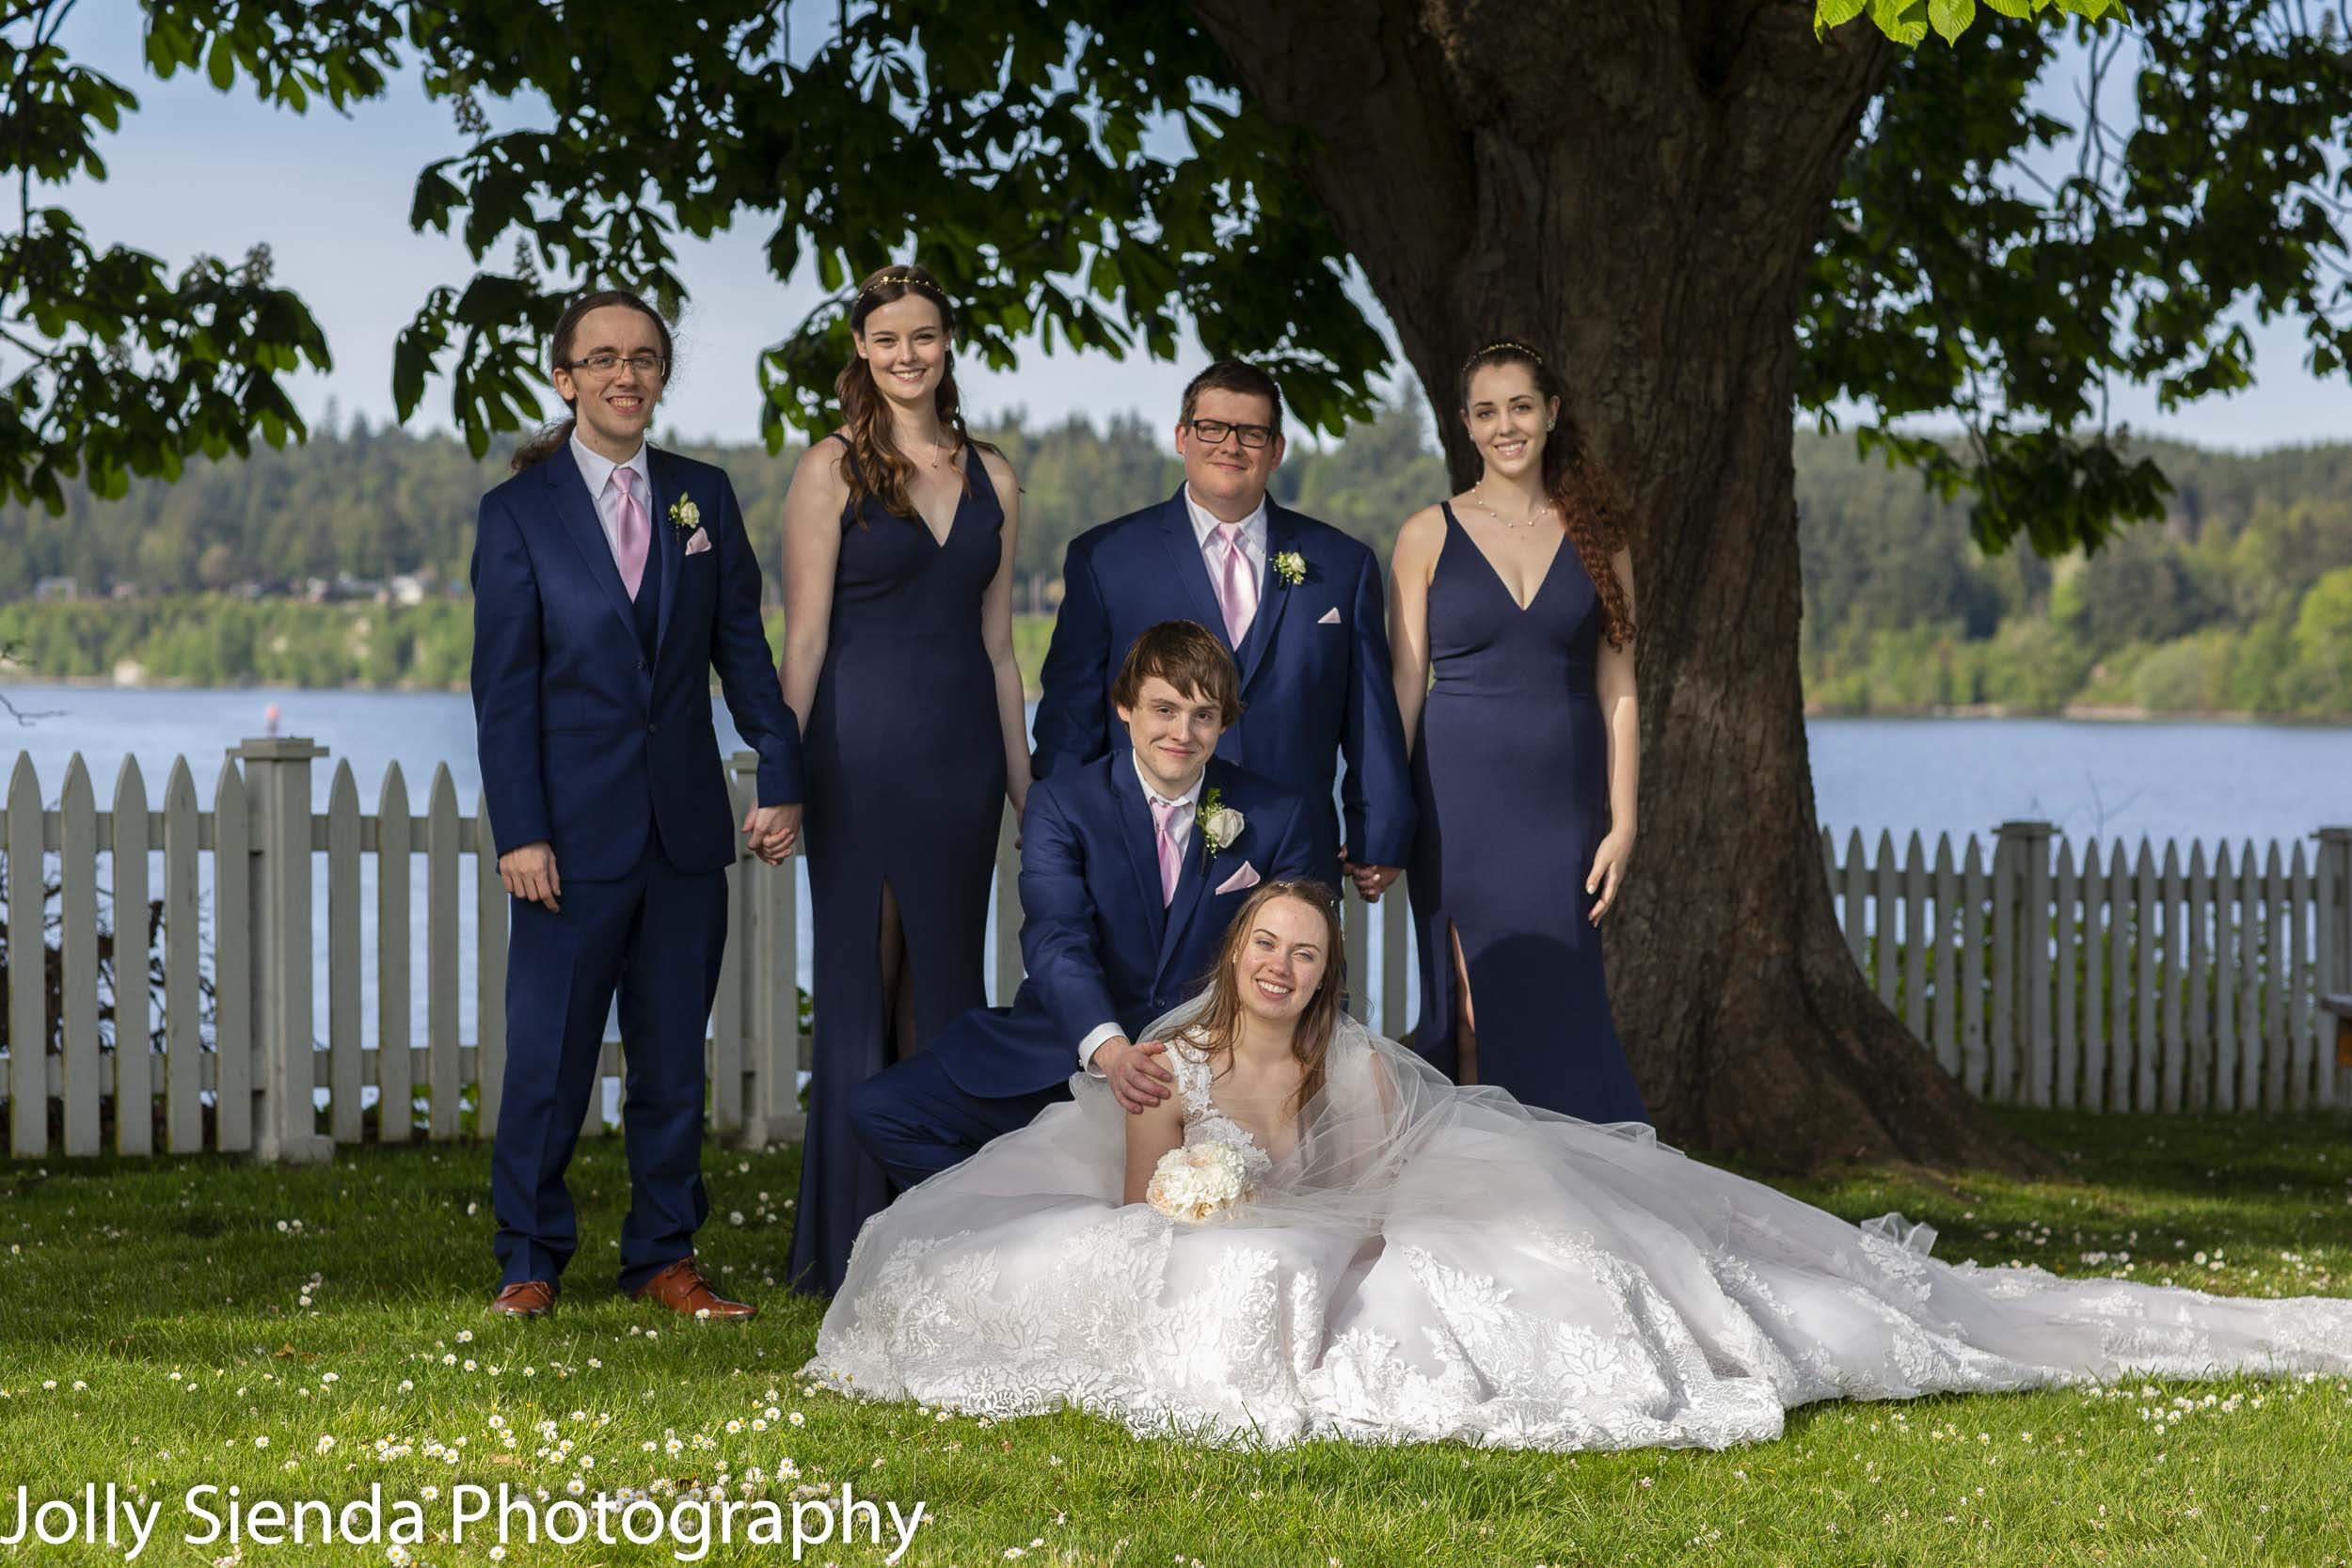 Lily, Aaron, and their wedding party at Port Gamble.